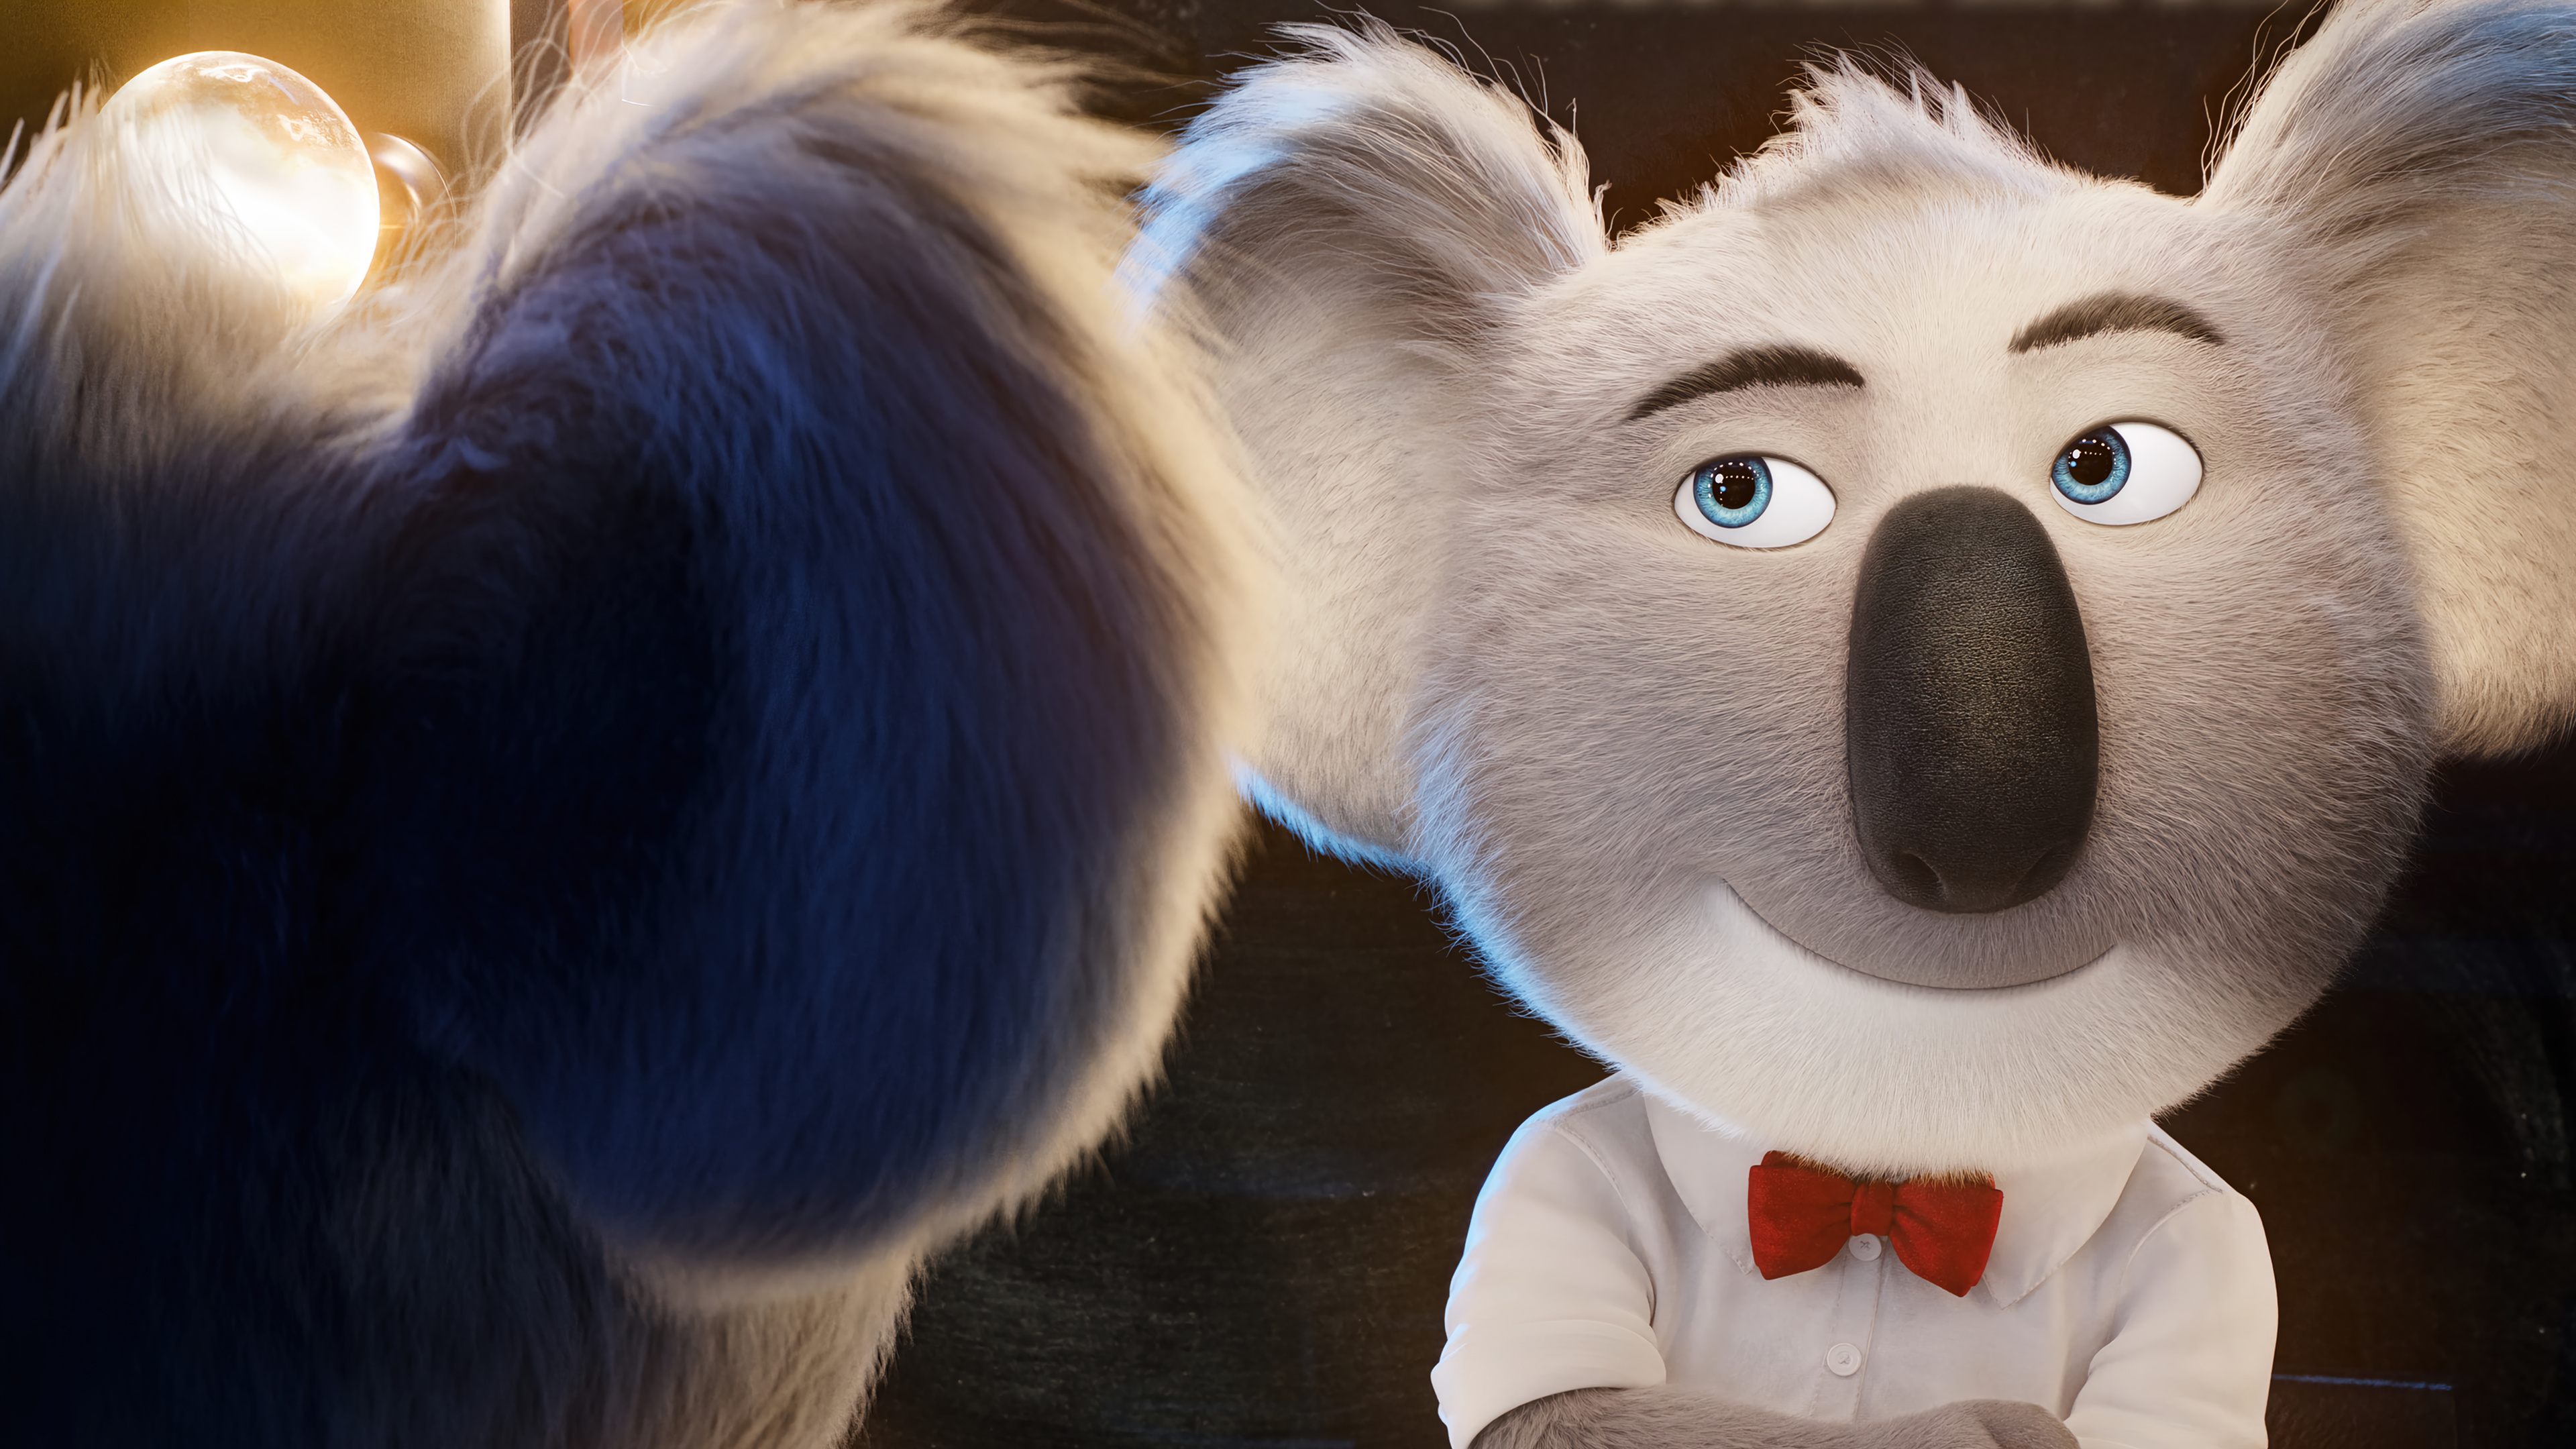 Wallpaper Buster from Sing 2